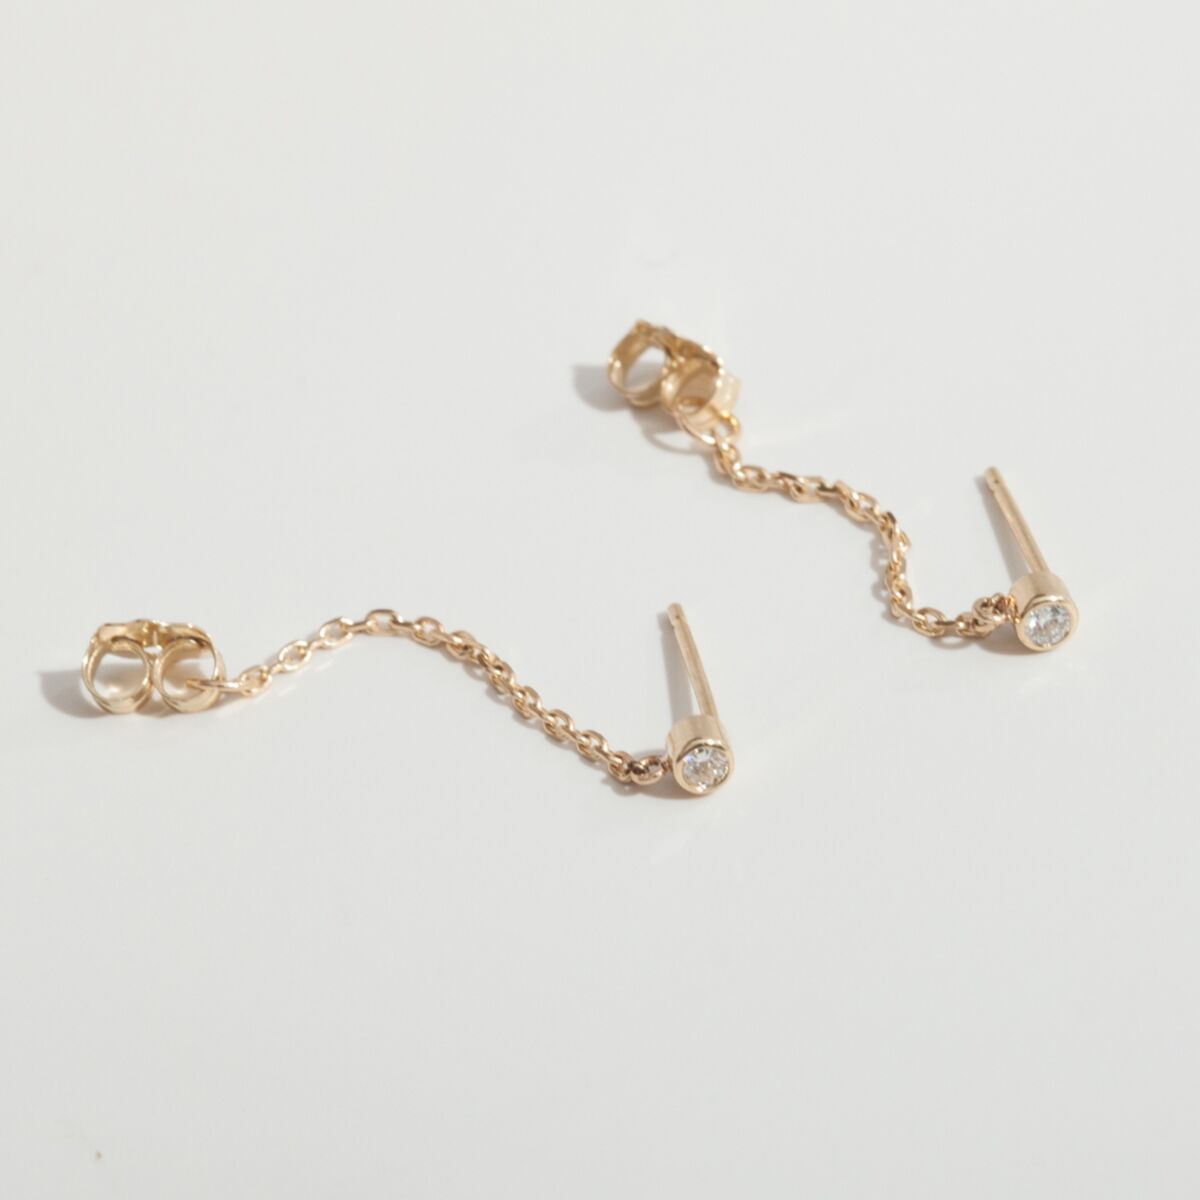 Chained to My Heart Earring, Sparkler (single) image